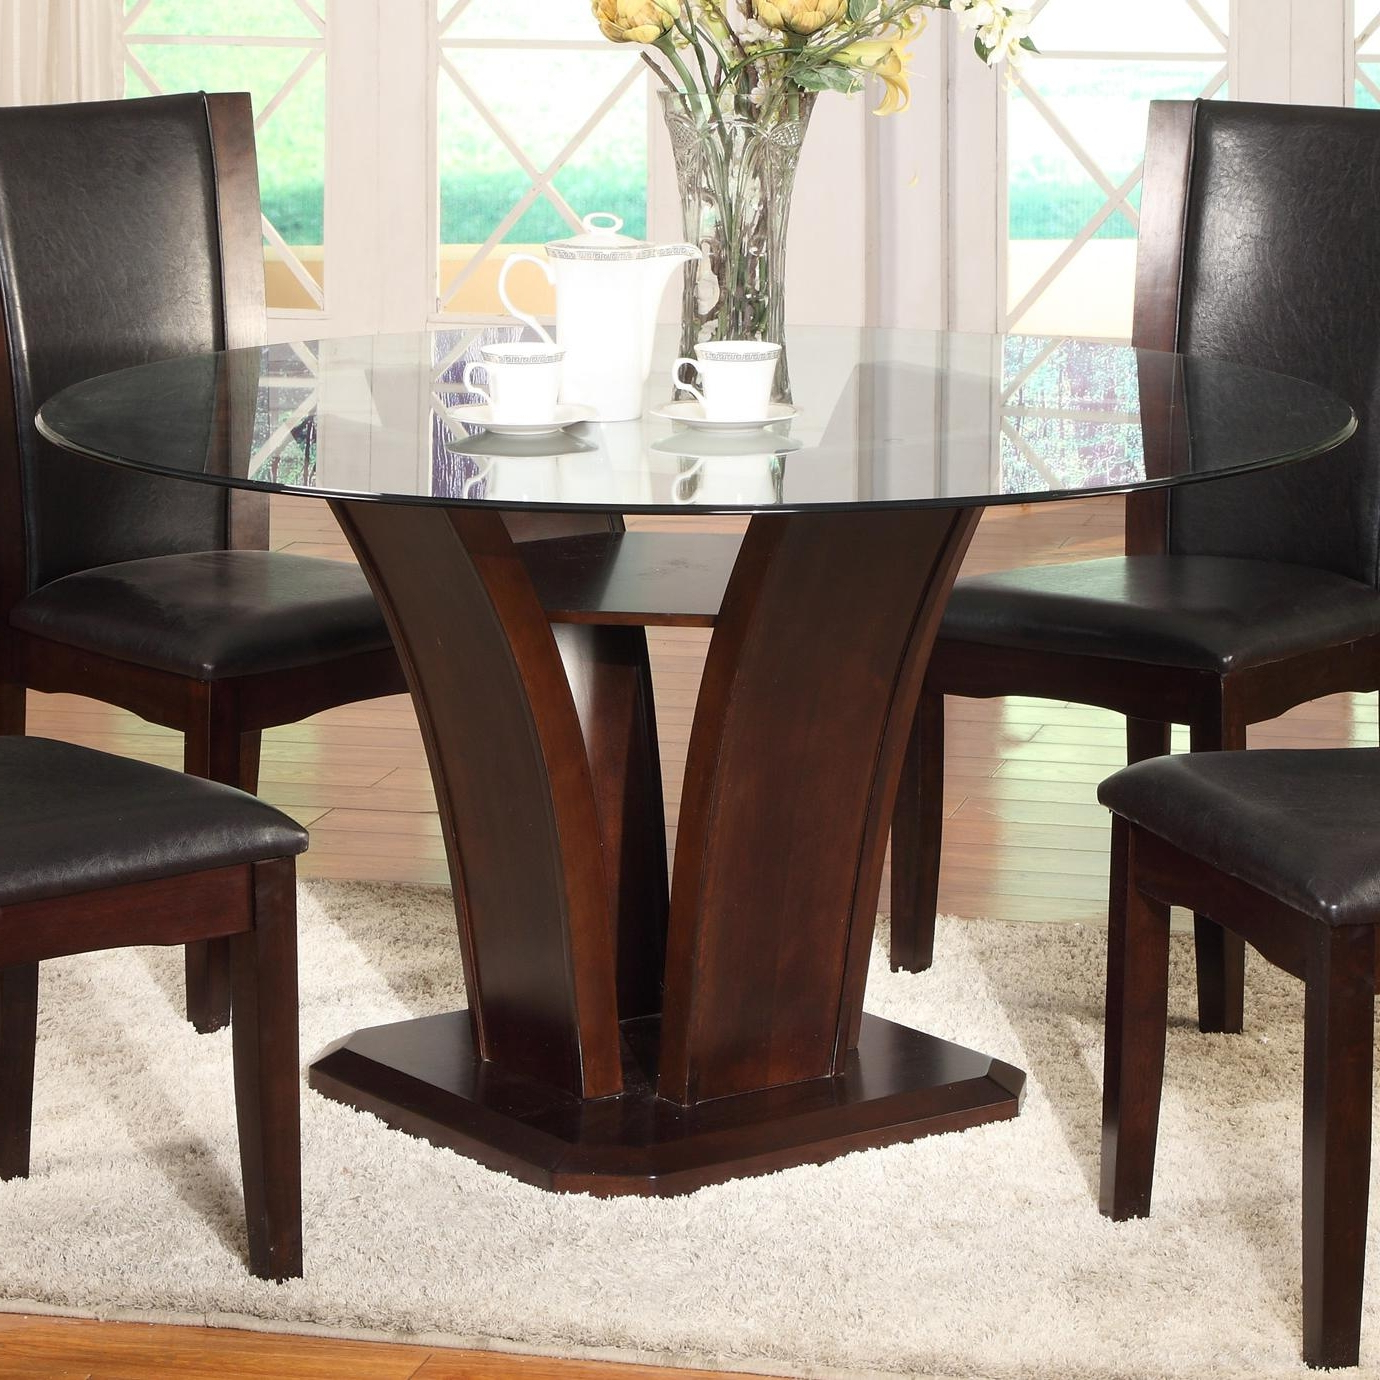 Favorite Round Dining Table Crown Mark Camelia Espresso Glass Top Throughout Round Dining Tables With Glass Top (View 5 of 25)